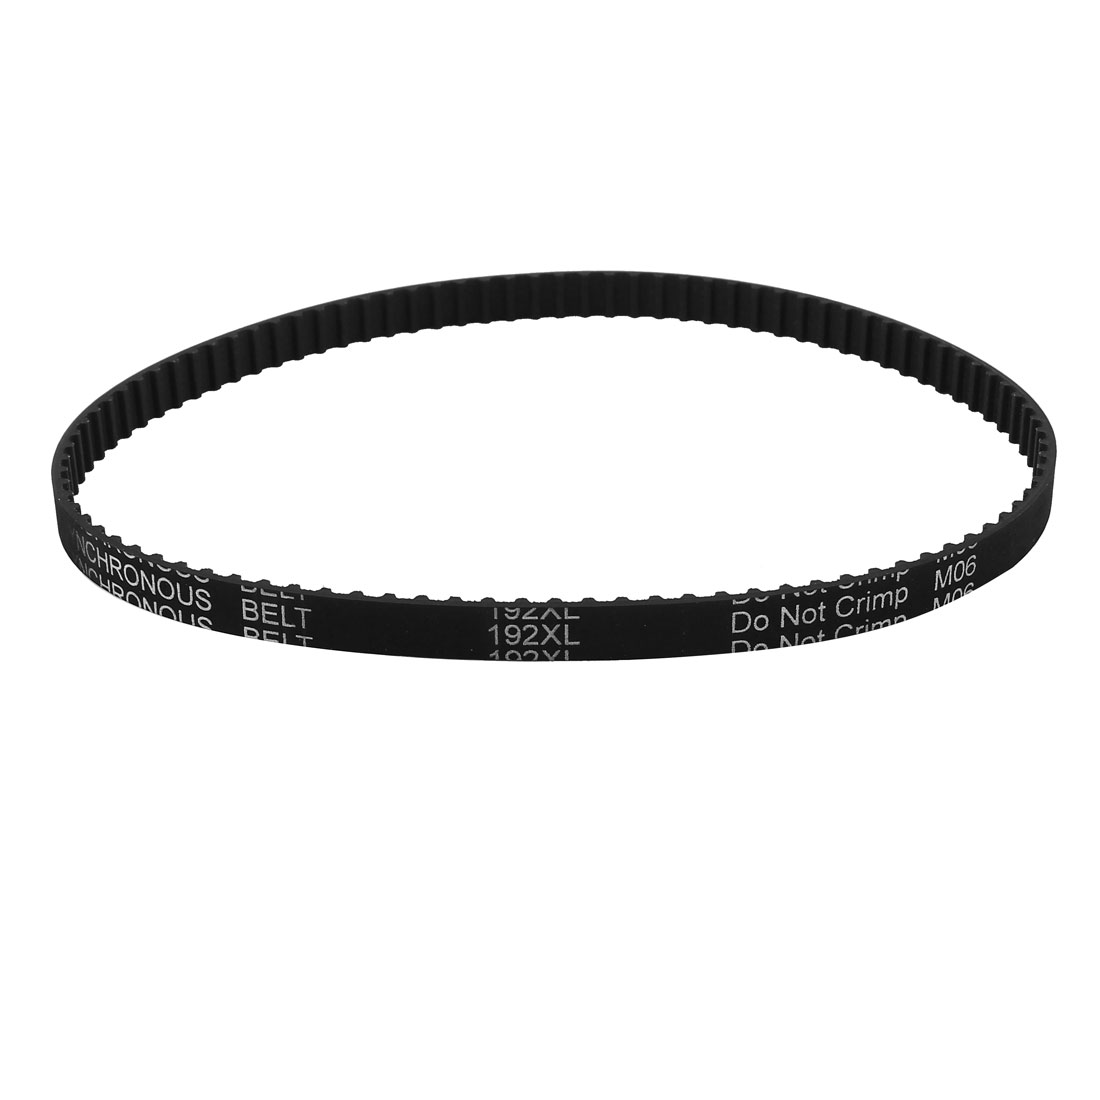 Table Saw 192XL 037 96 Teeth 5.08mm Pitch 9.5mm Width Rubber Timing Belt Black